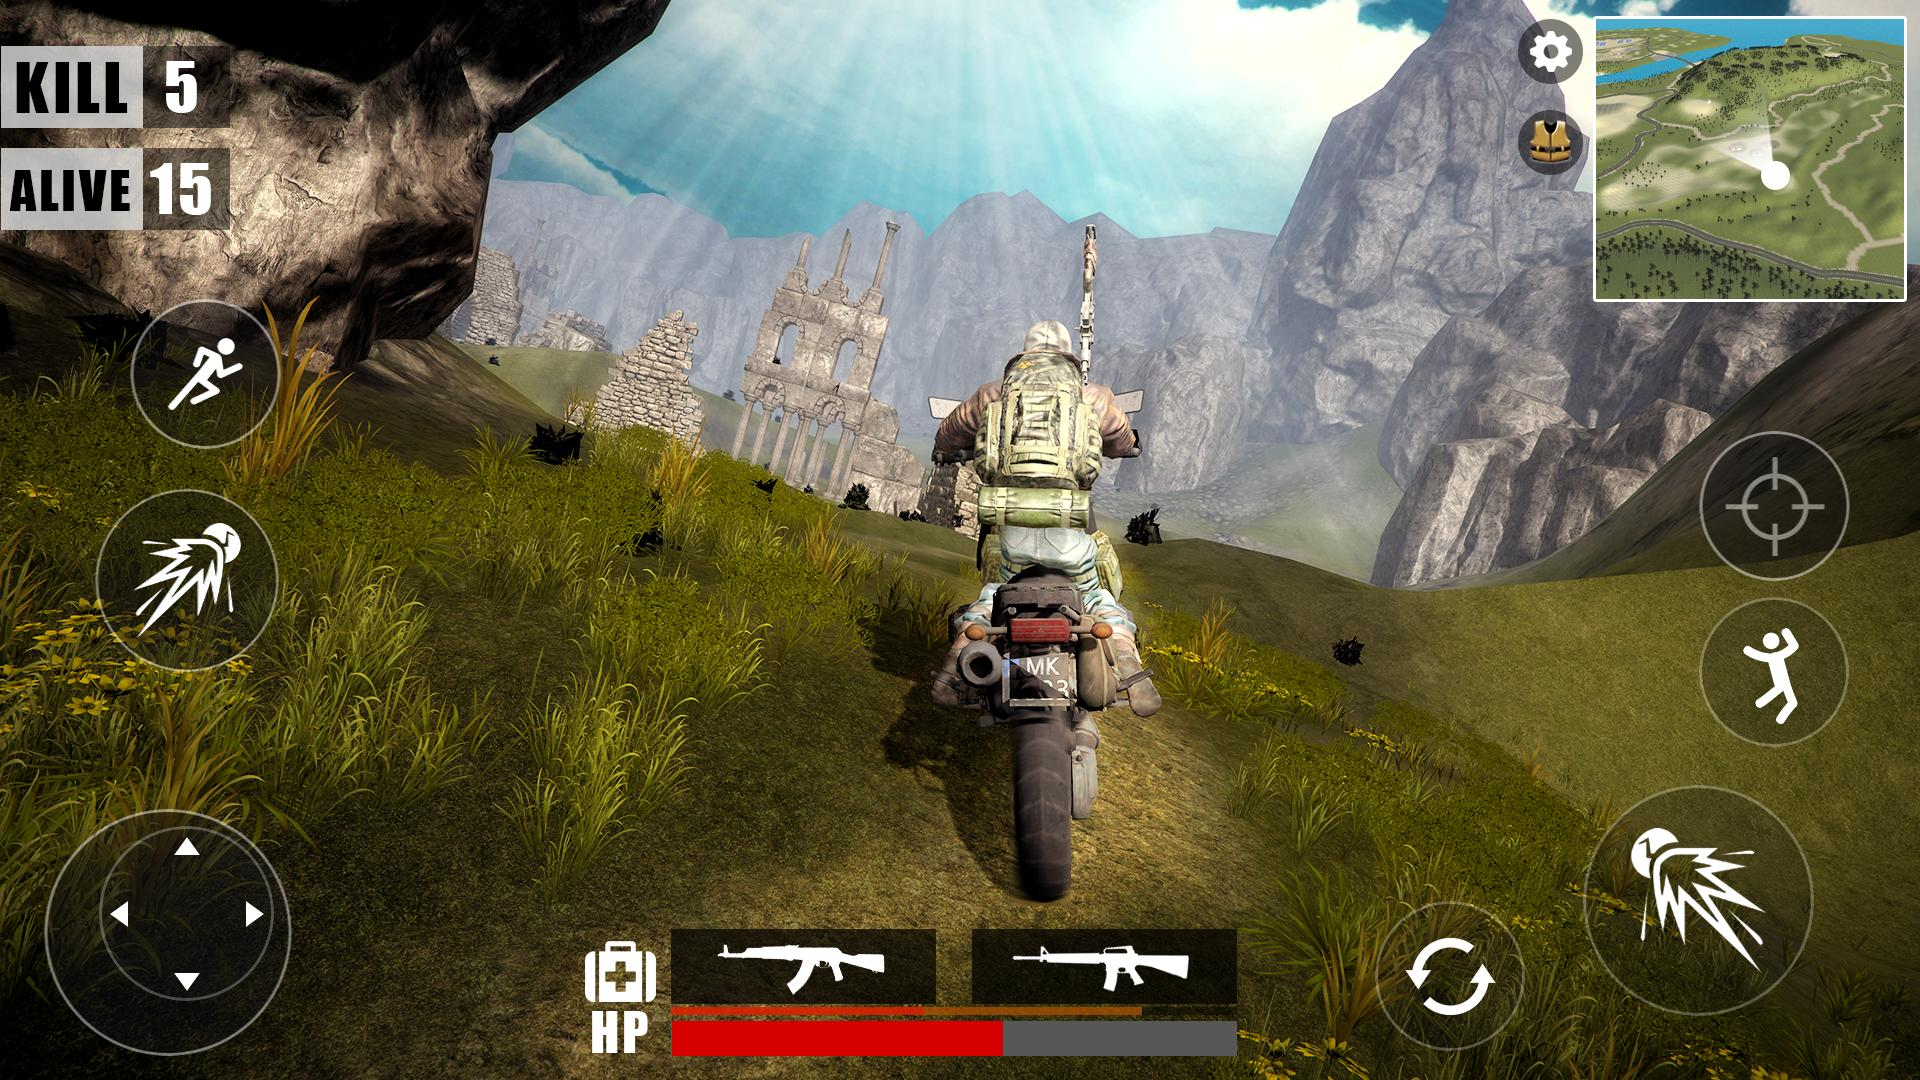 Survival Battleground Free Fire Battle Royale For Android